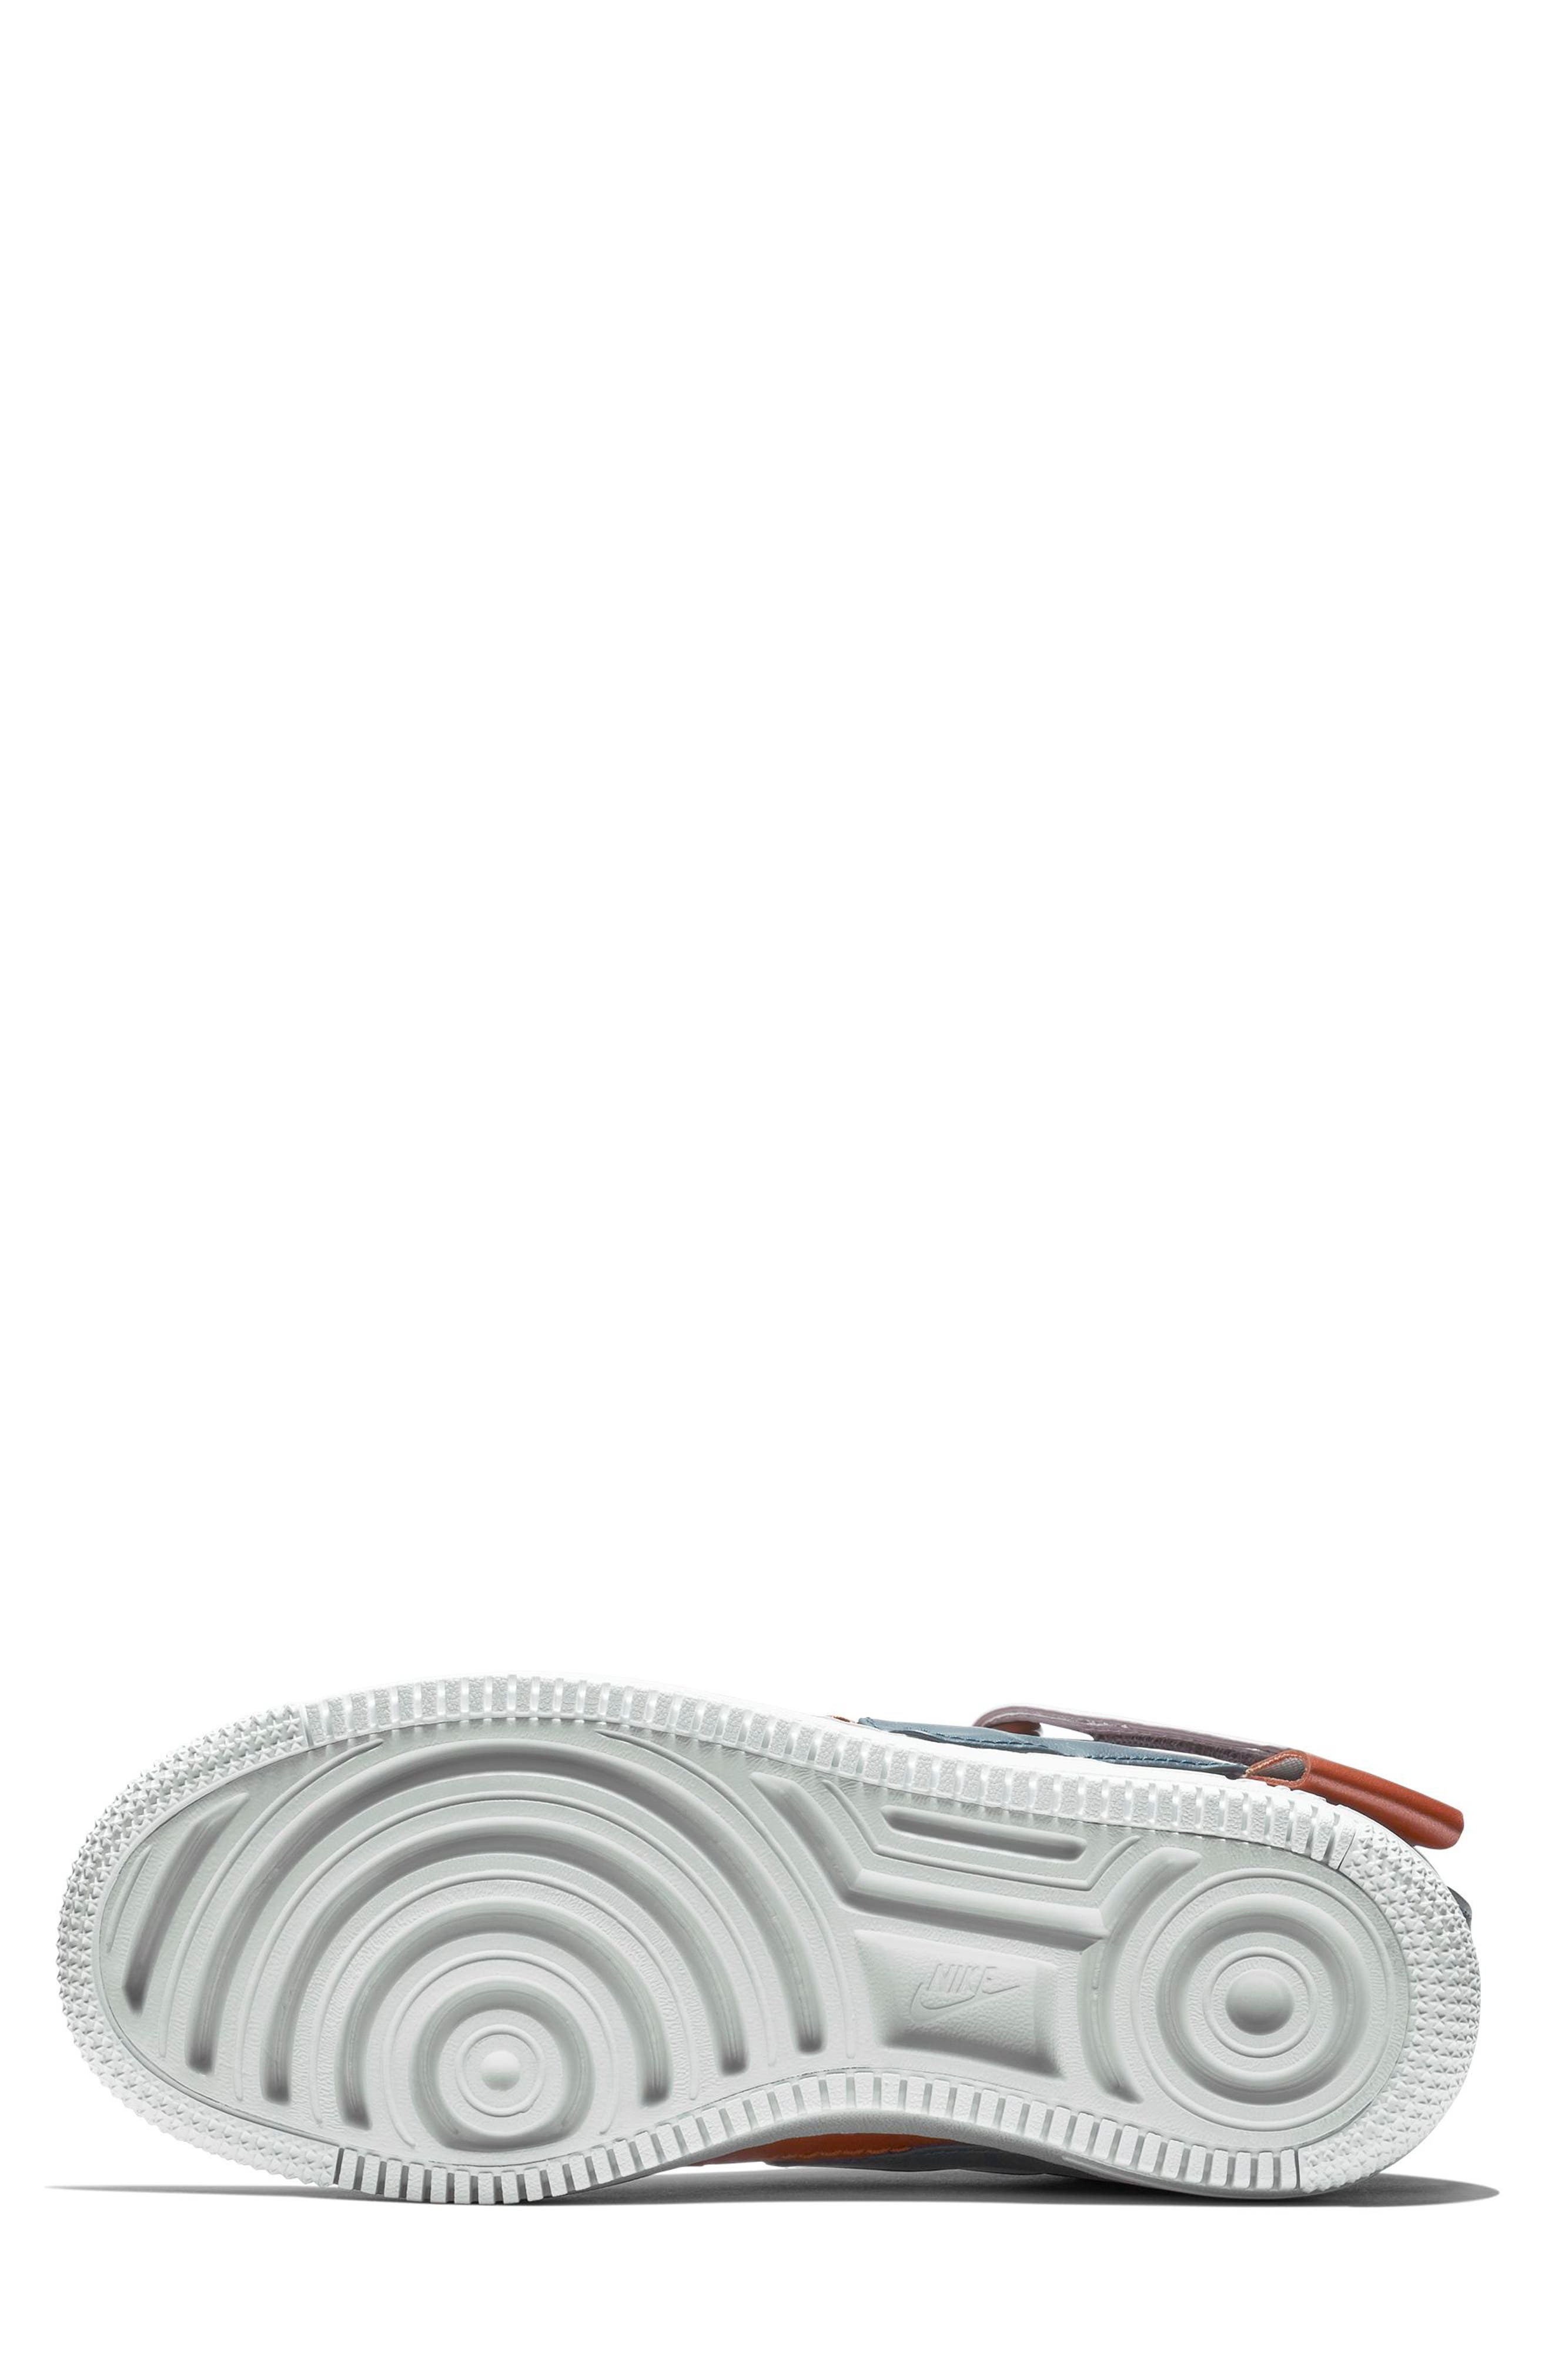 NIKE, Air Force 1 Jester High XX Sneaker, Alternate thumbnail 5, color, 500